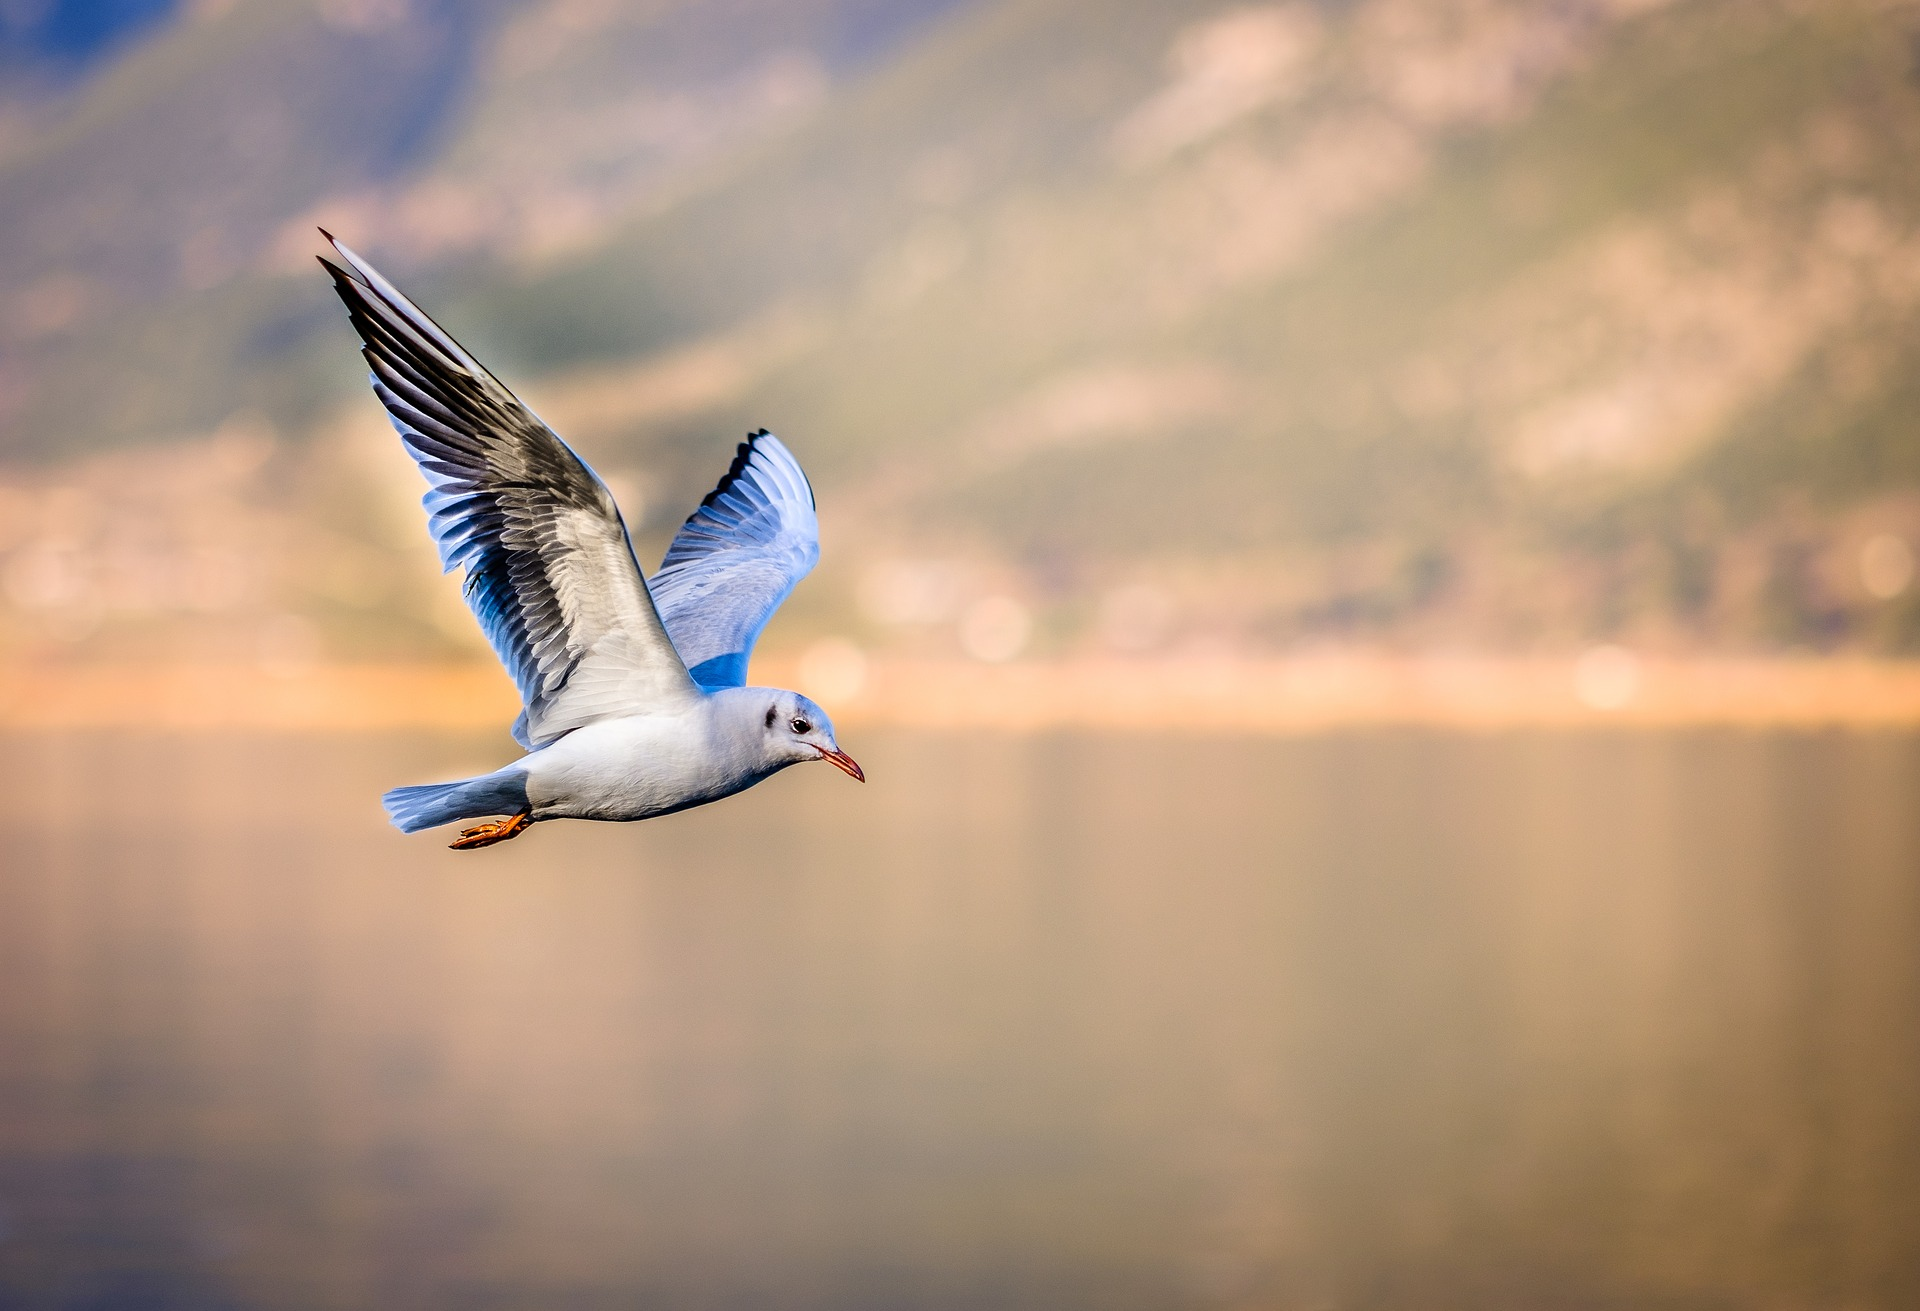 6 Steps To Photographing Birds Successfully